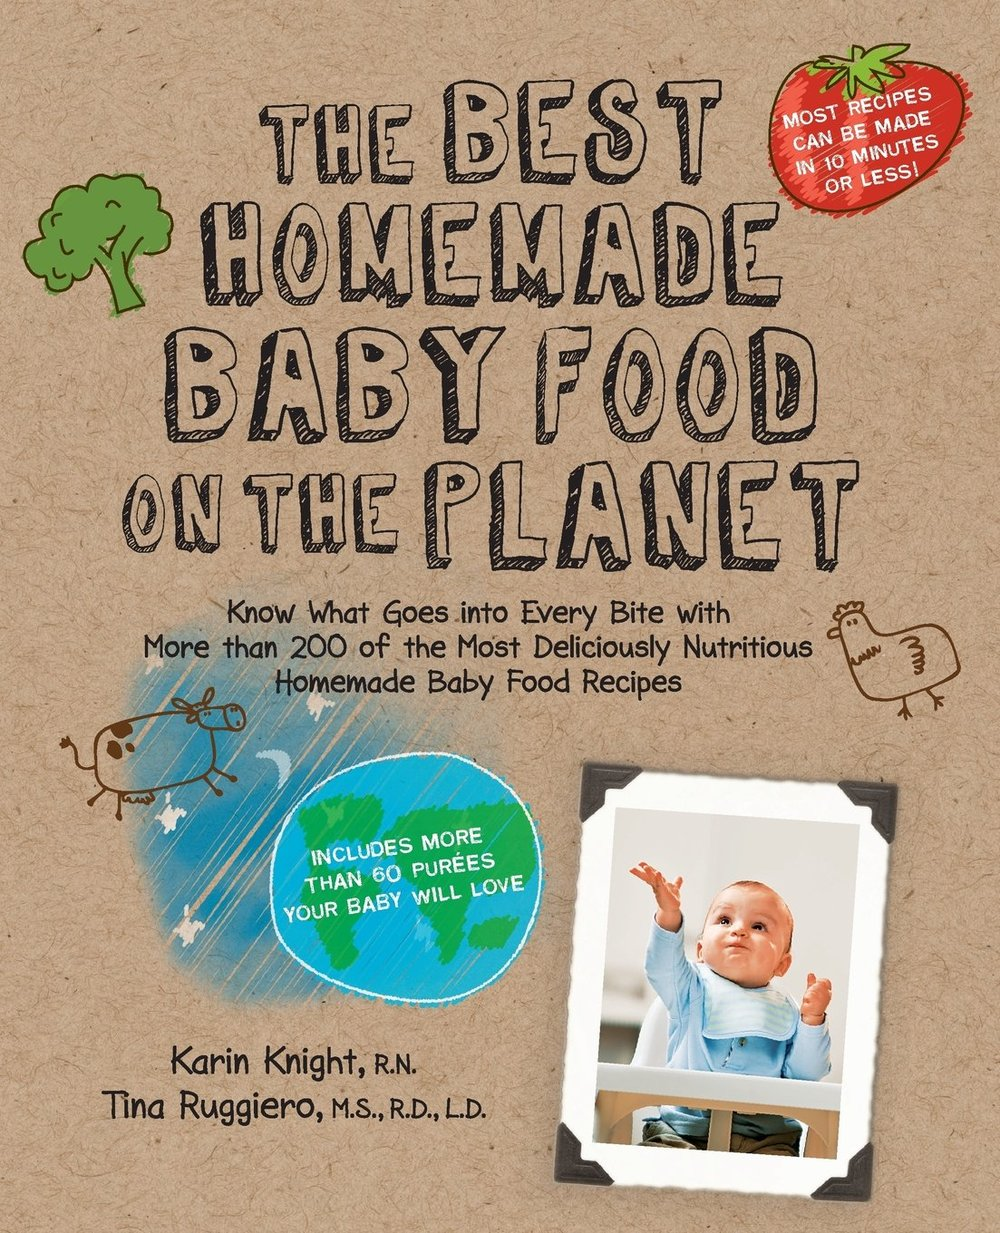 The Best Homemade Baby Food on the Planet - Knight & Ruggiero